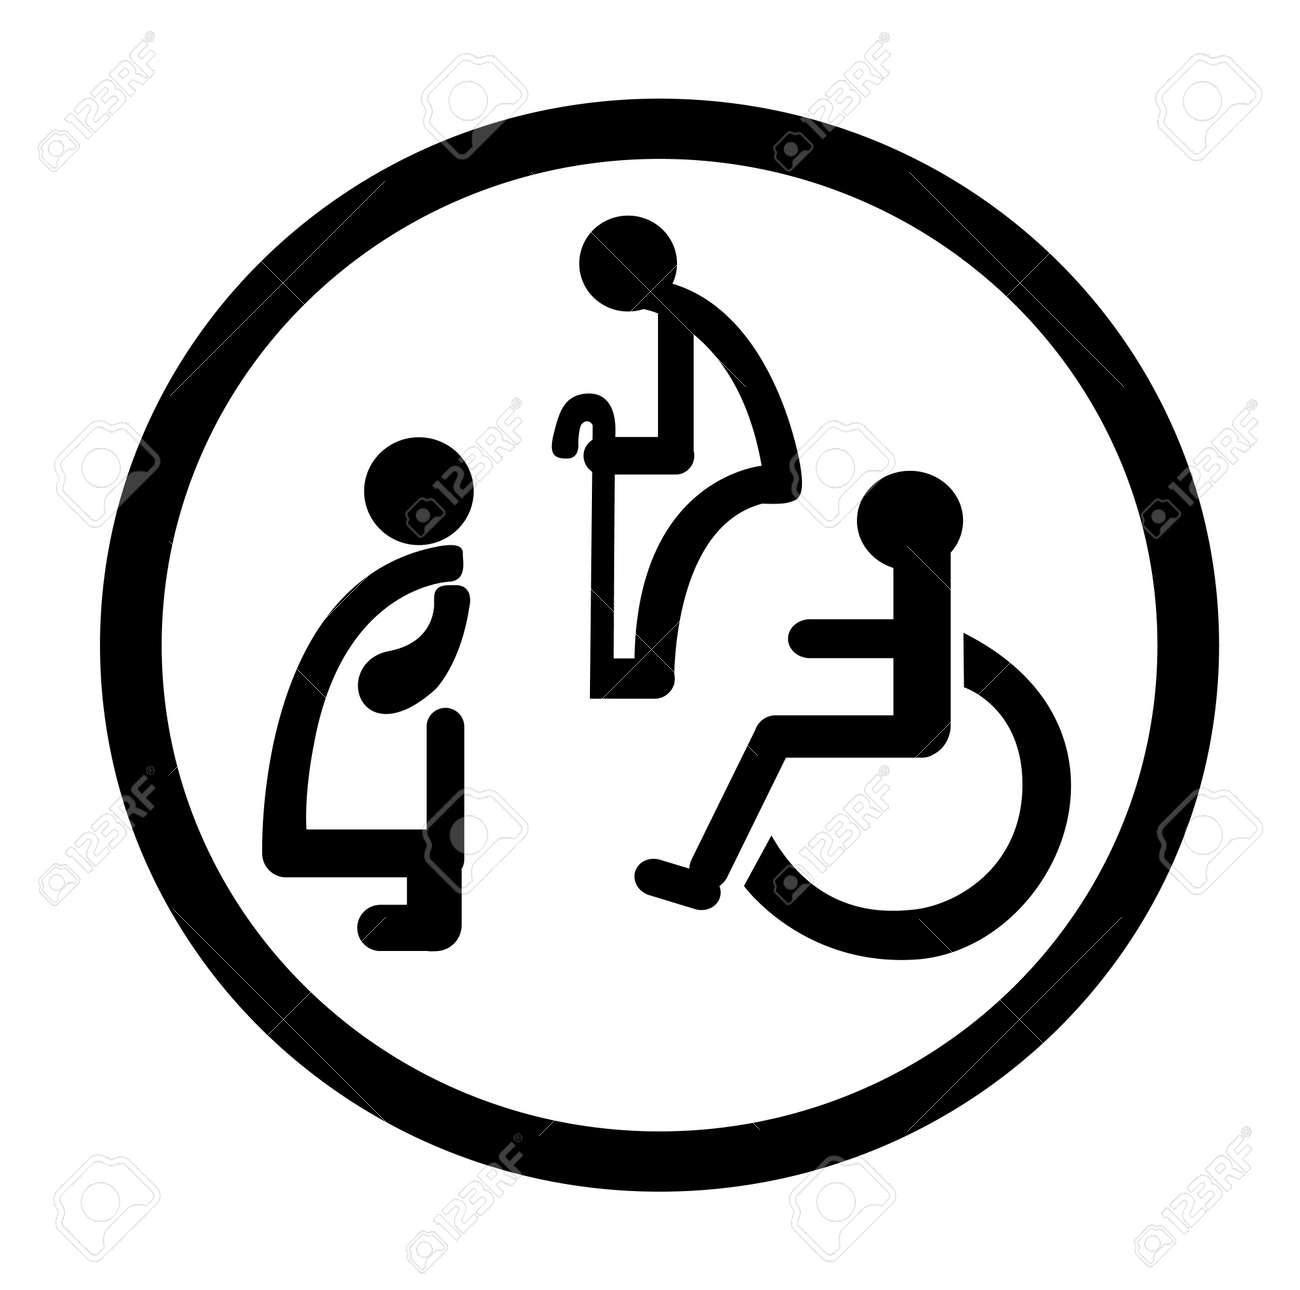 Bathroom Signs For Persons With Special Needs Stock Vector